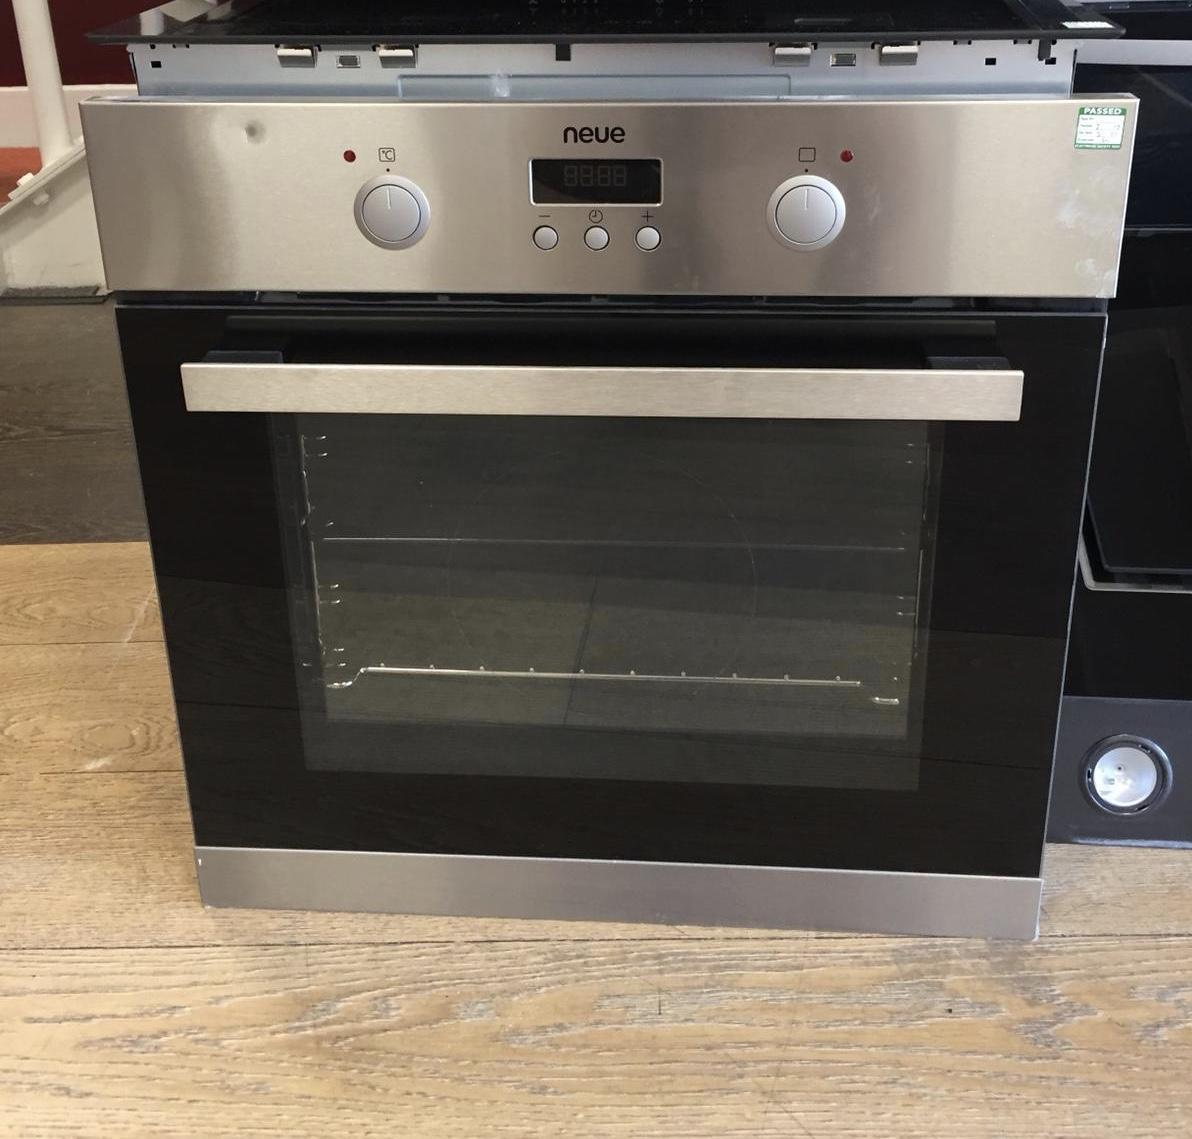 Neue single stainlss steel built in oven (ex display) 1 year